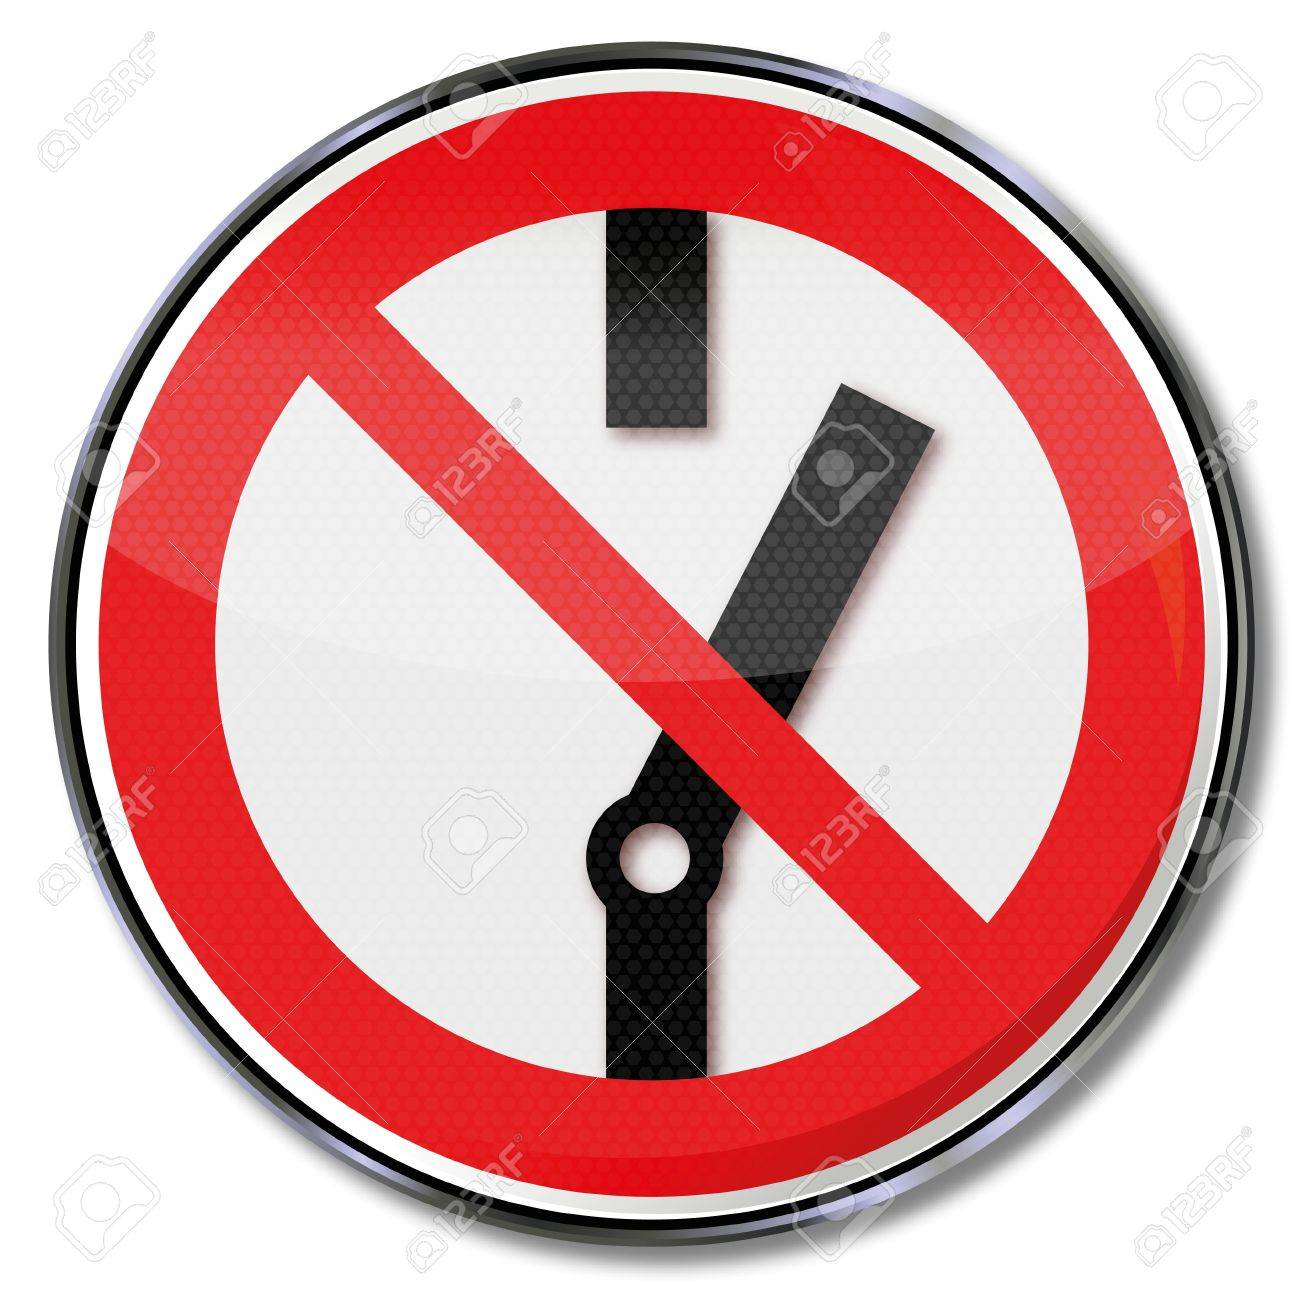 Turn prohibition signs prohibited Stock Vector - 14778001